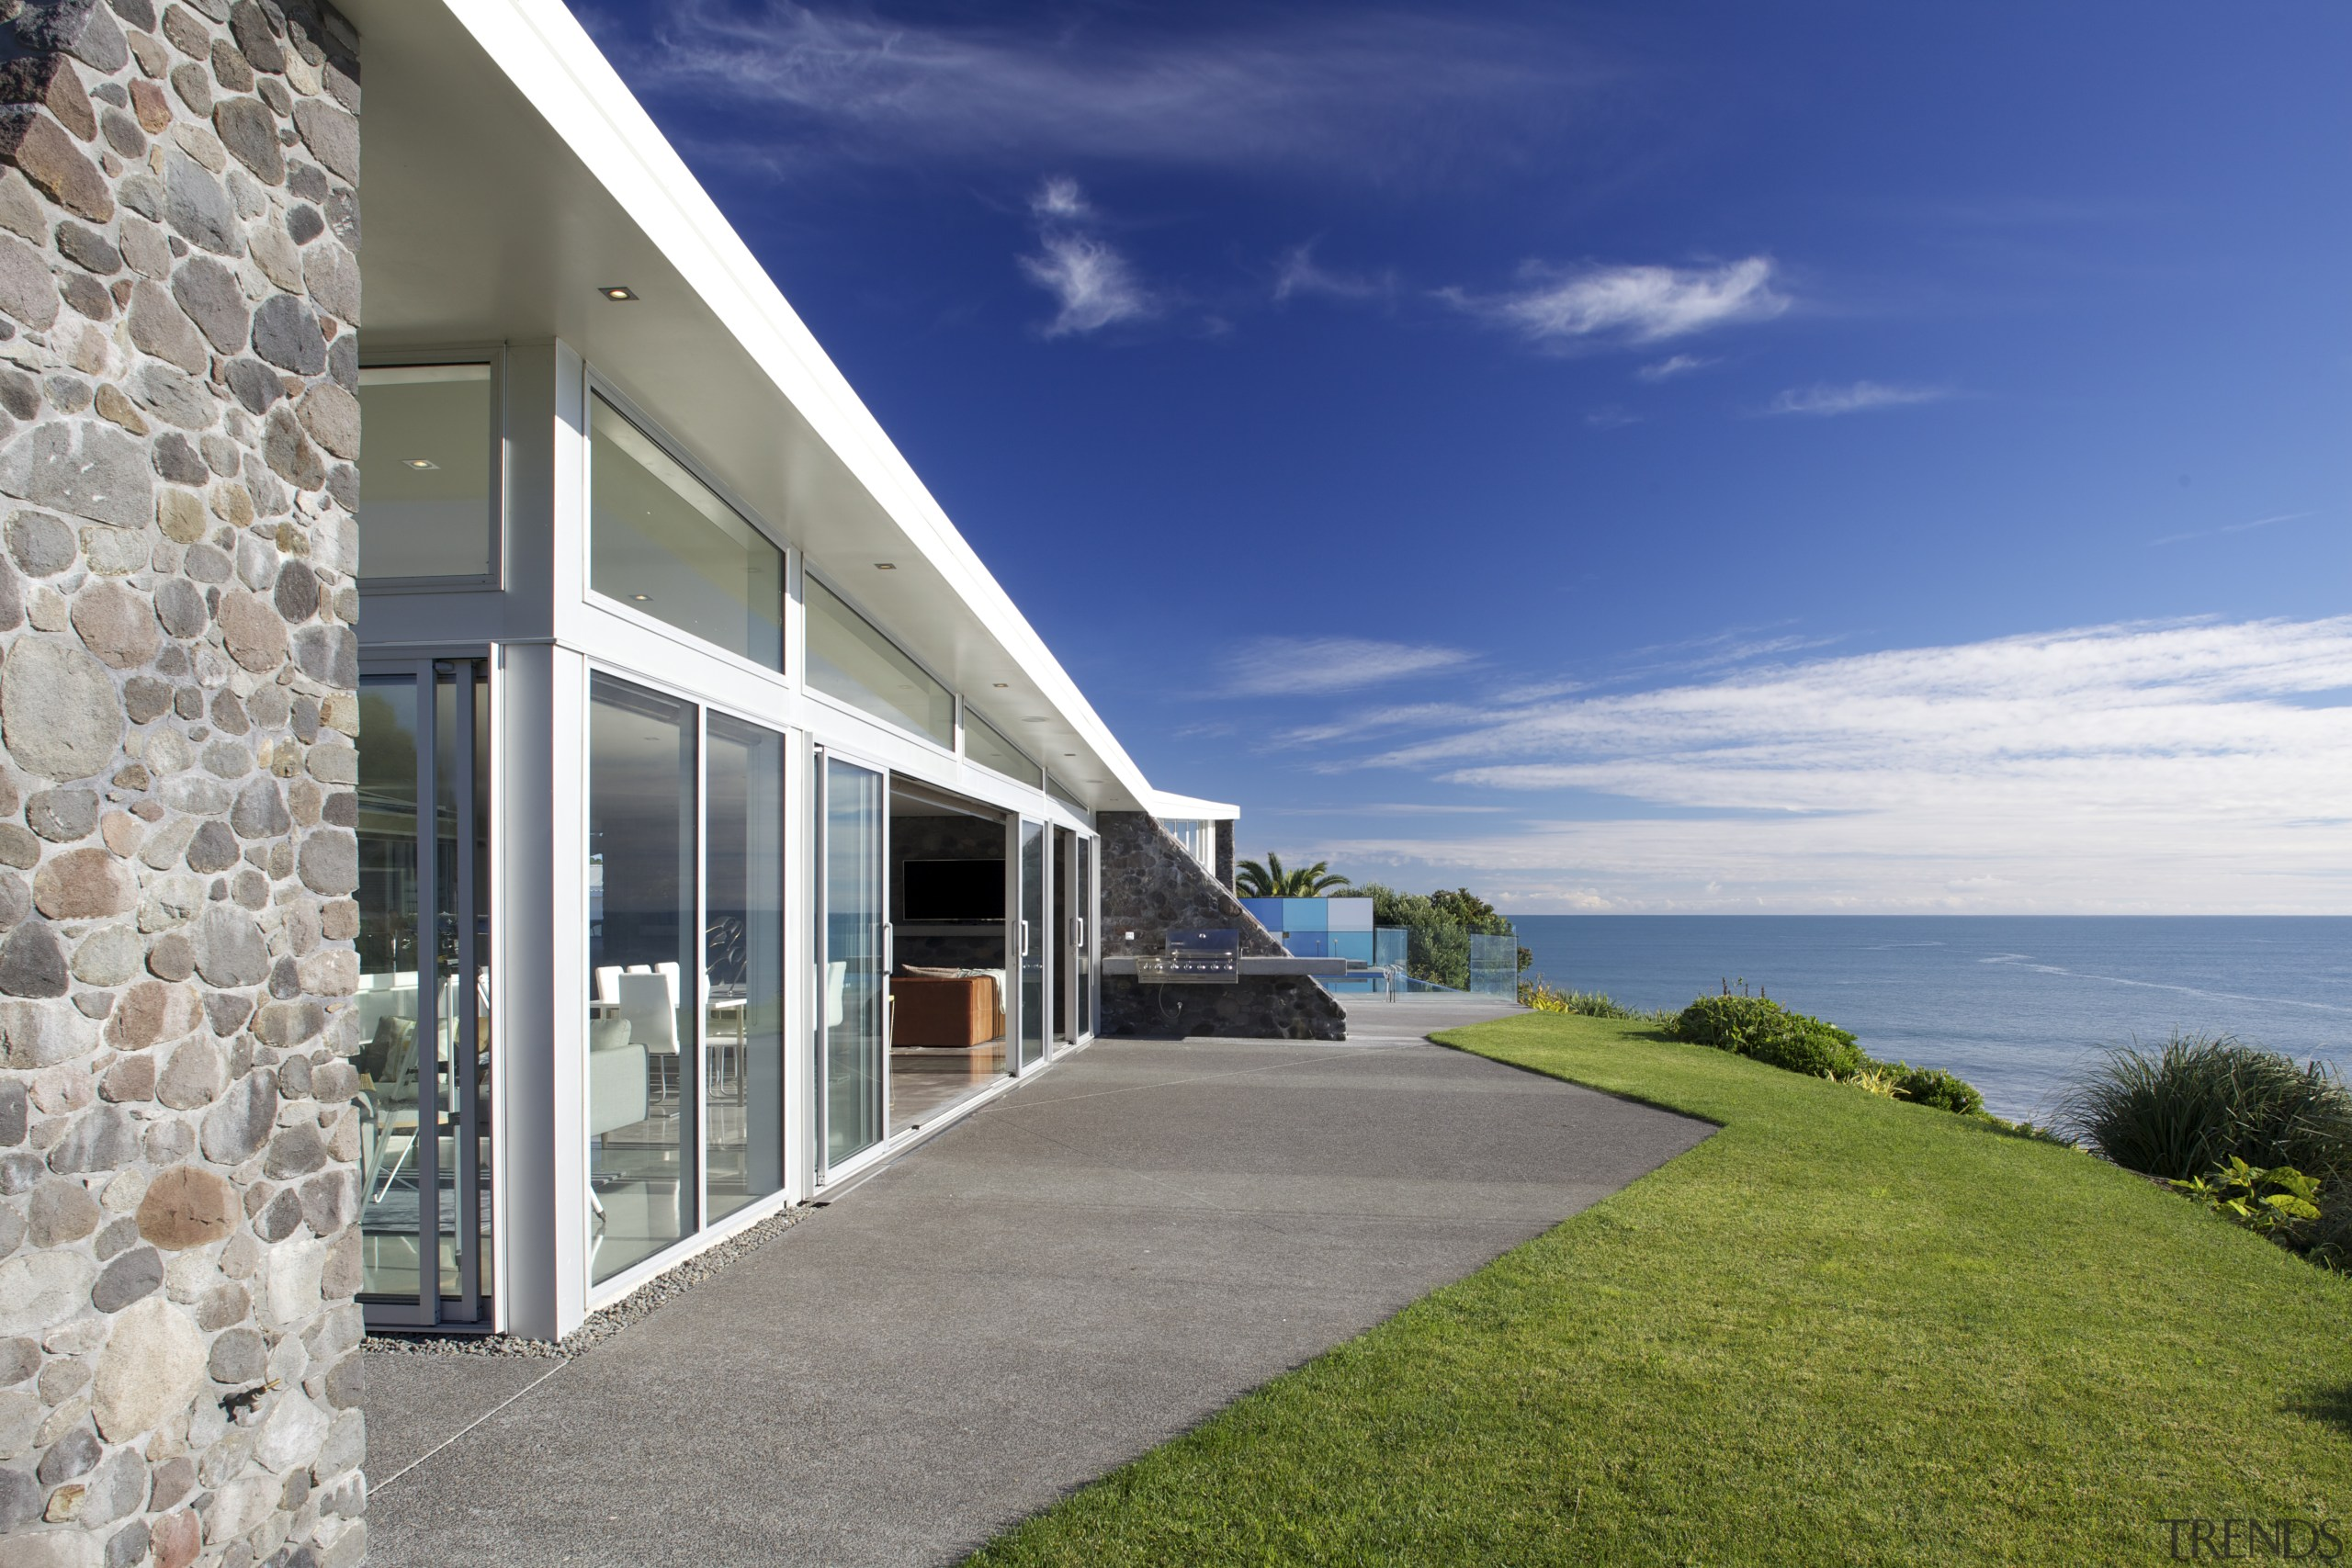 Contemporary cliff-top house by Michael Mansvelt - architecture architecture, building, coastal and oceanic landforms, cottage, design, estate, facade, grass, home, house, interior design, property, real estate, residential area, sea, sky, villa, window, blue, gray